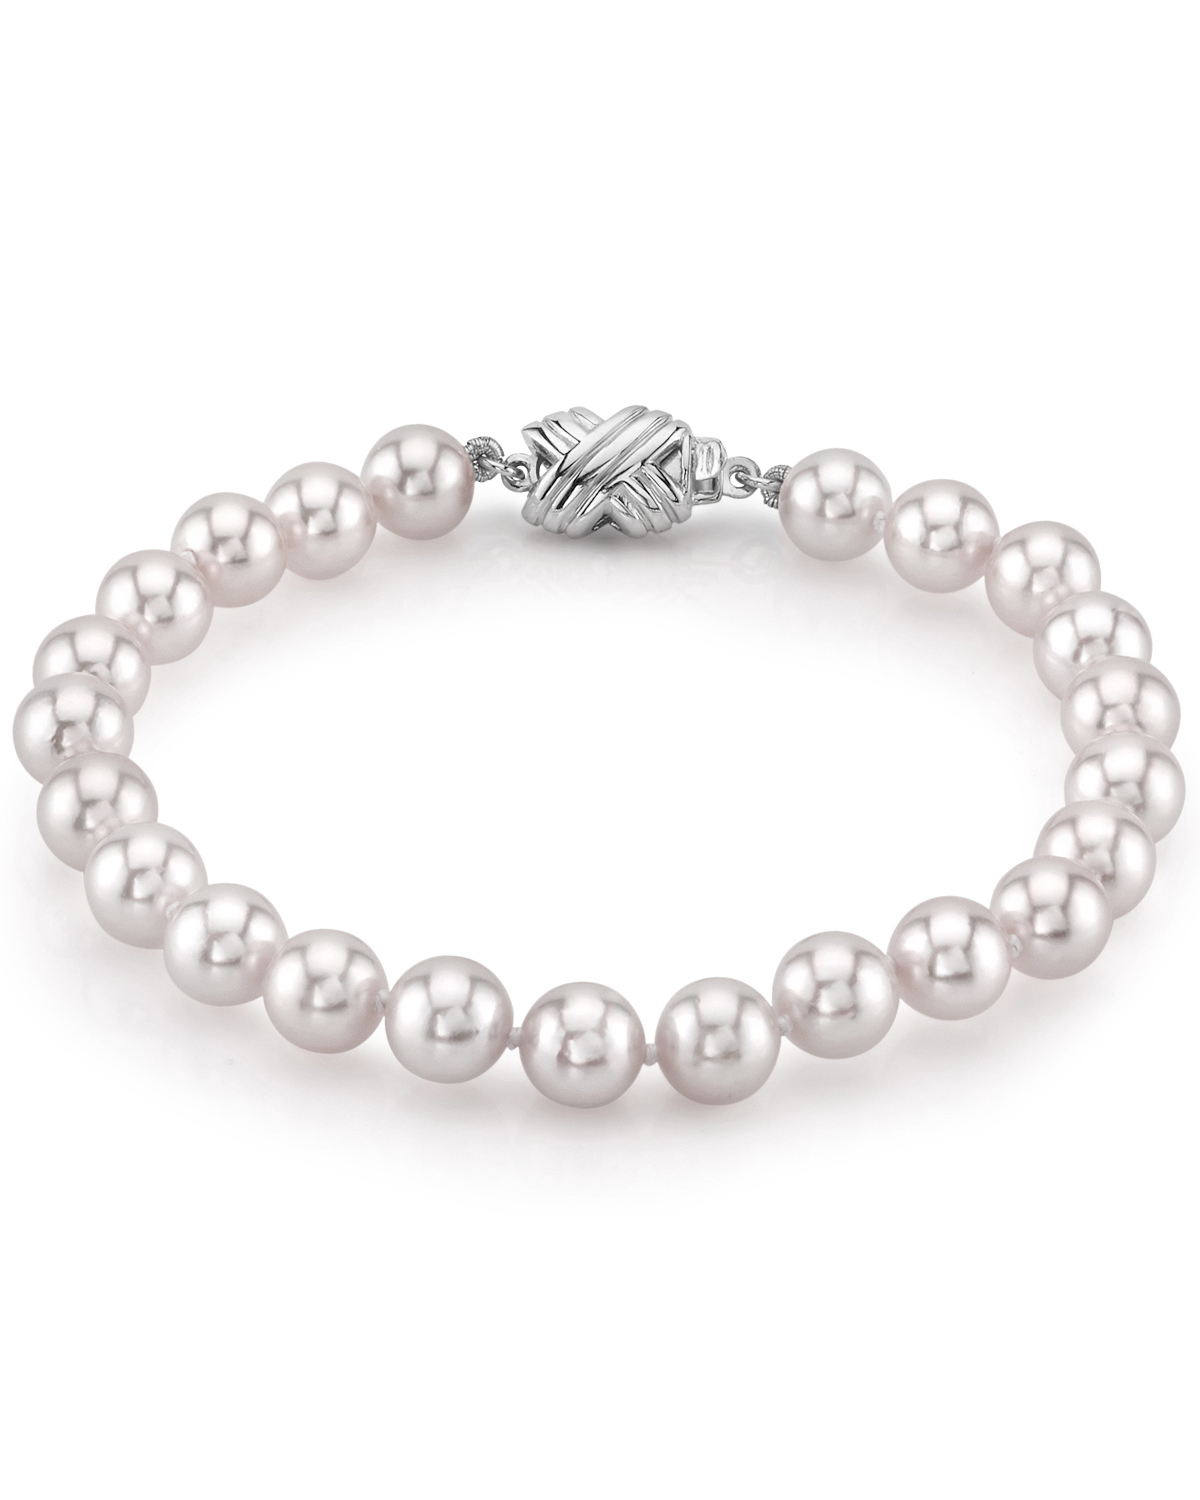 6.5-7.0mm Akoya White Pearl Bracelet- Choose Your Quality